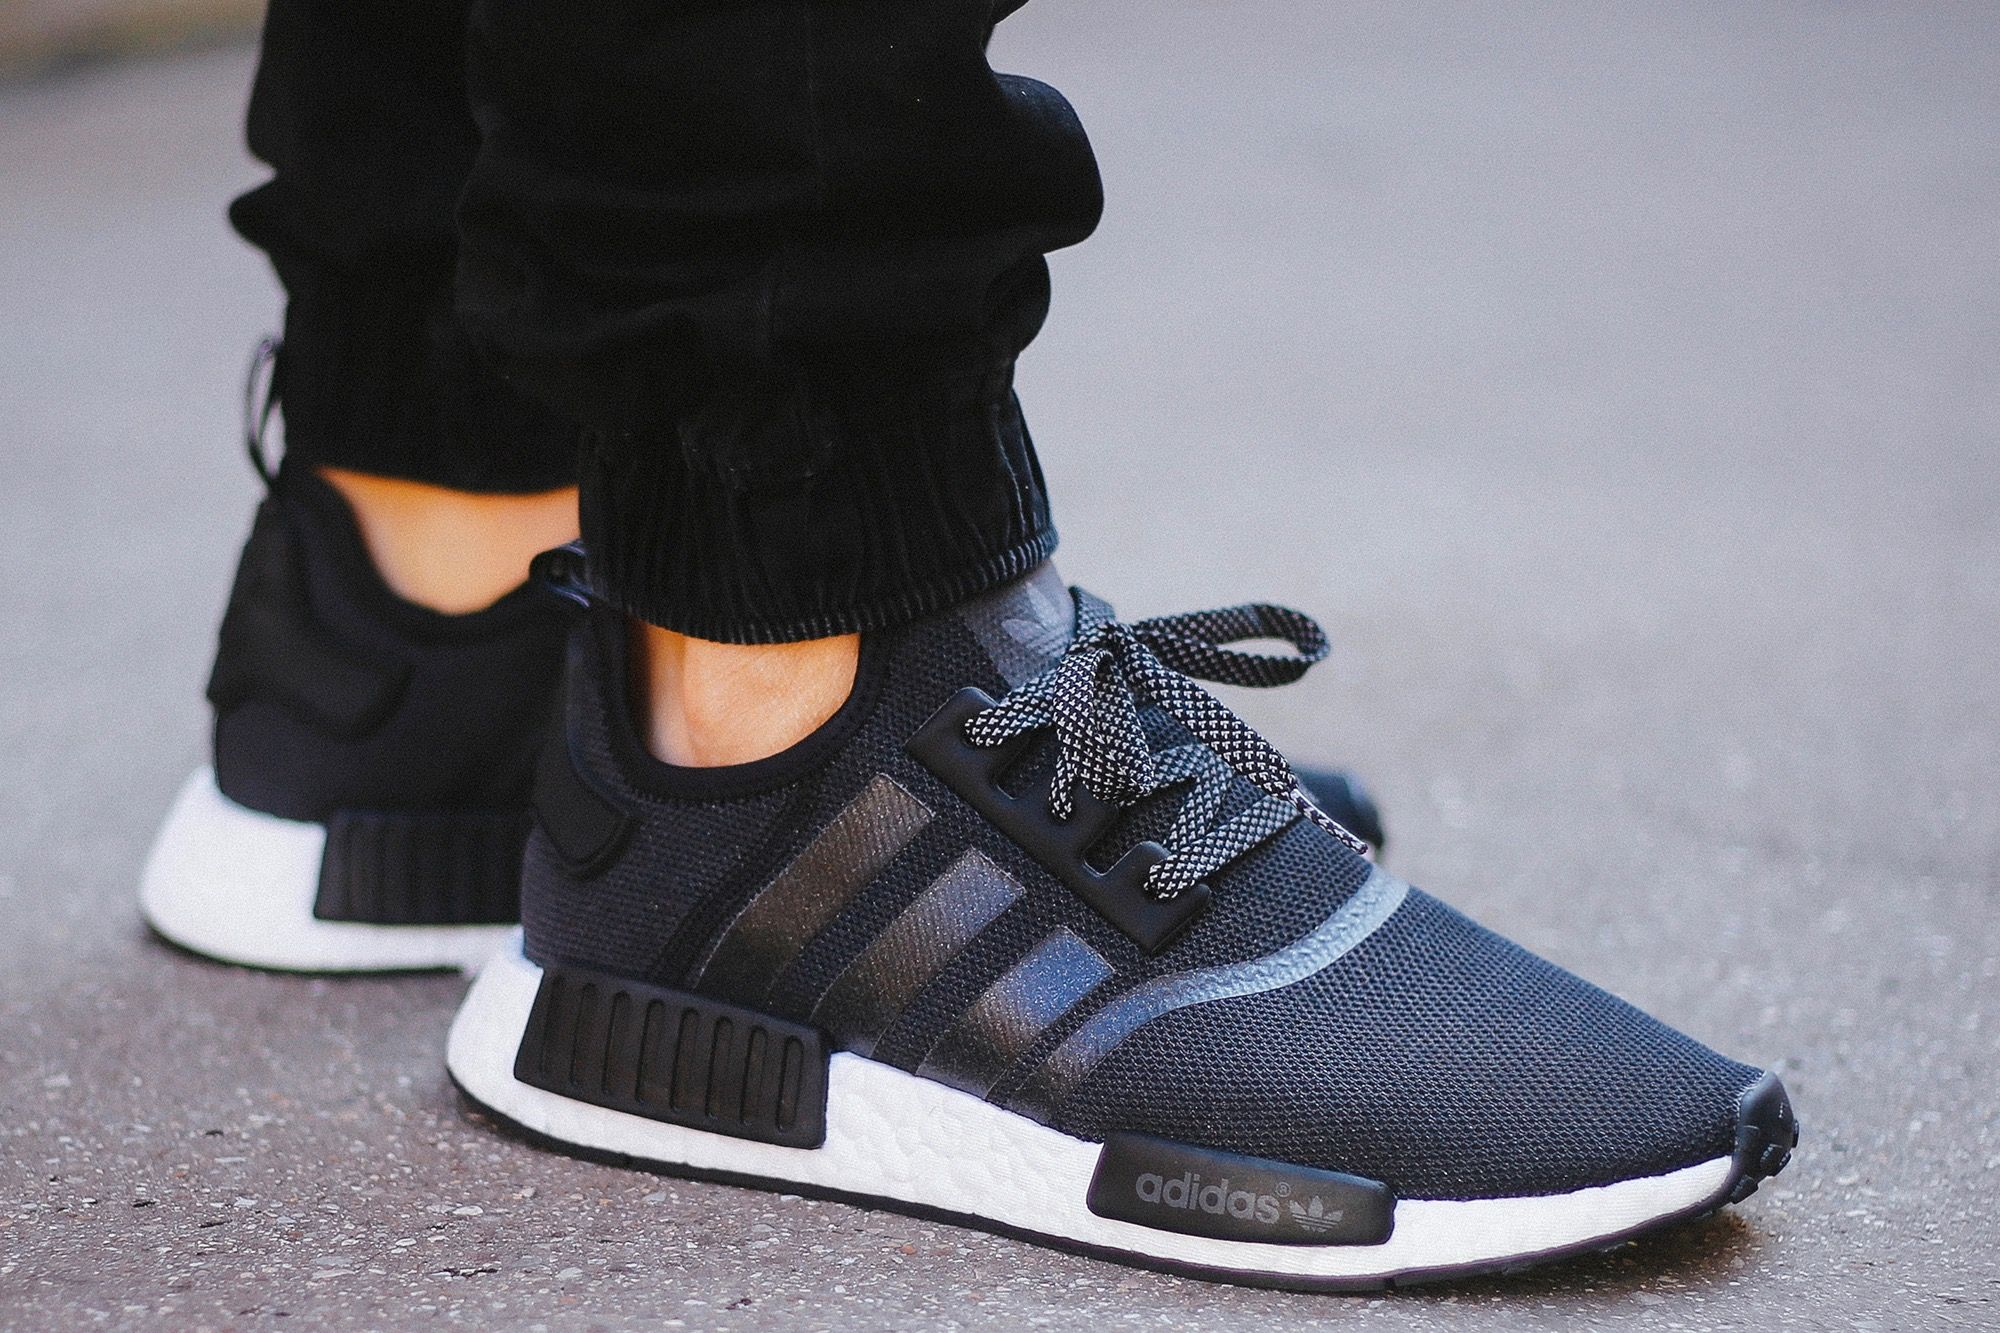 446e37326a4b9 adidas NMD R1   XR1 On-foot Preview via BSTN Store